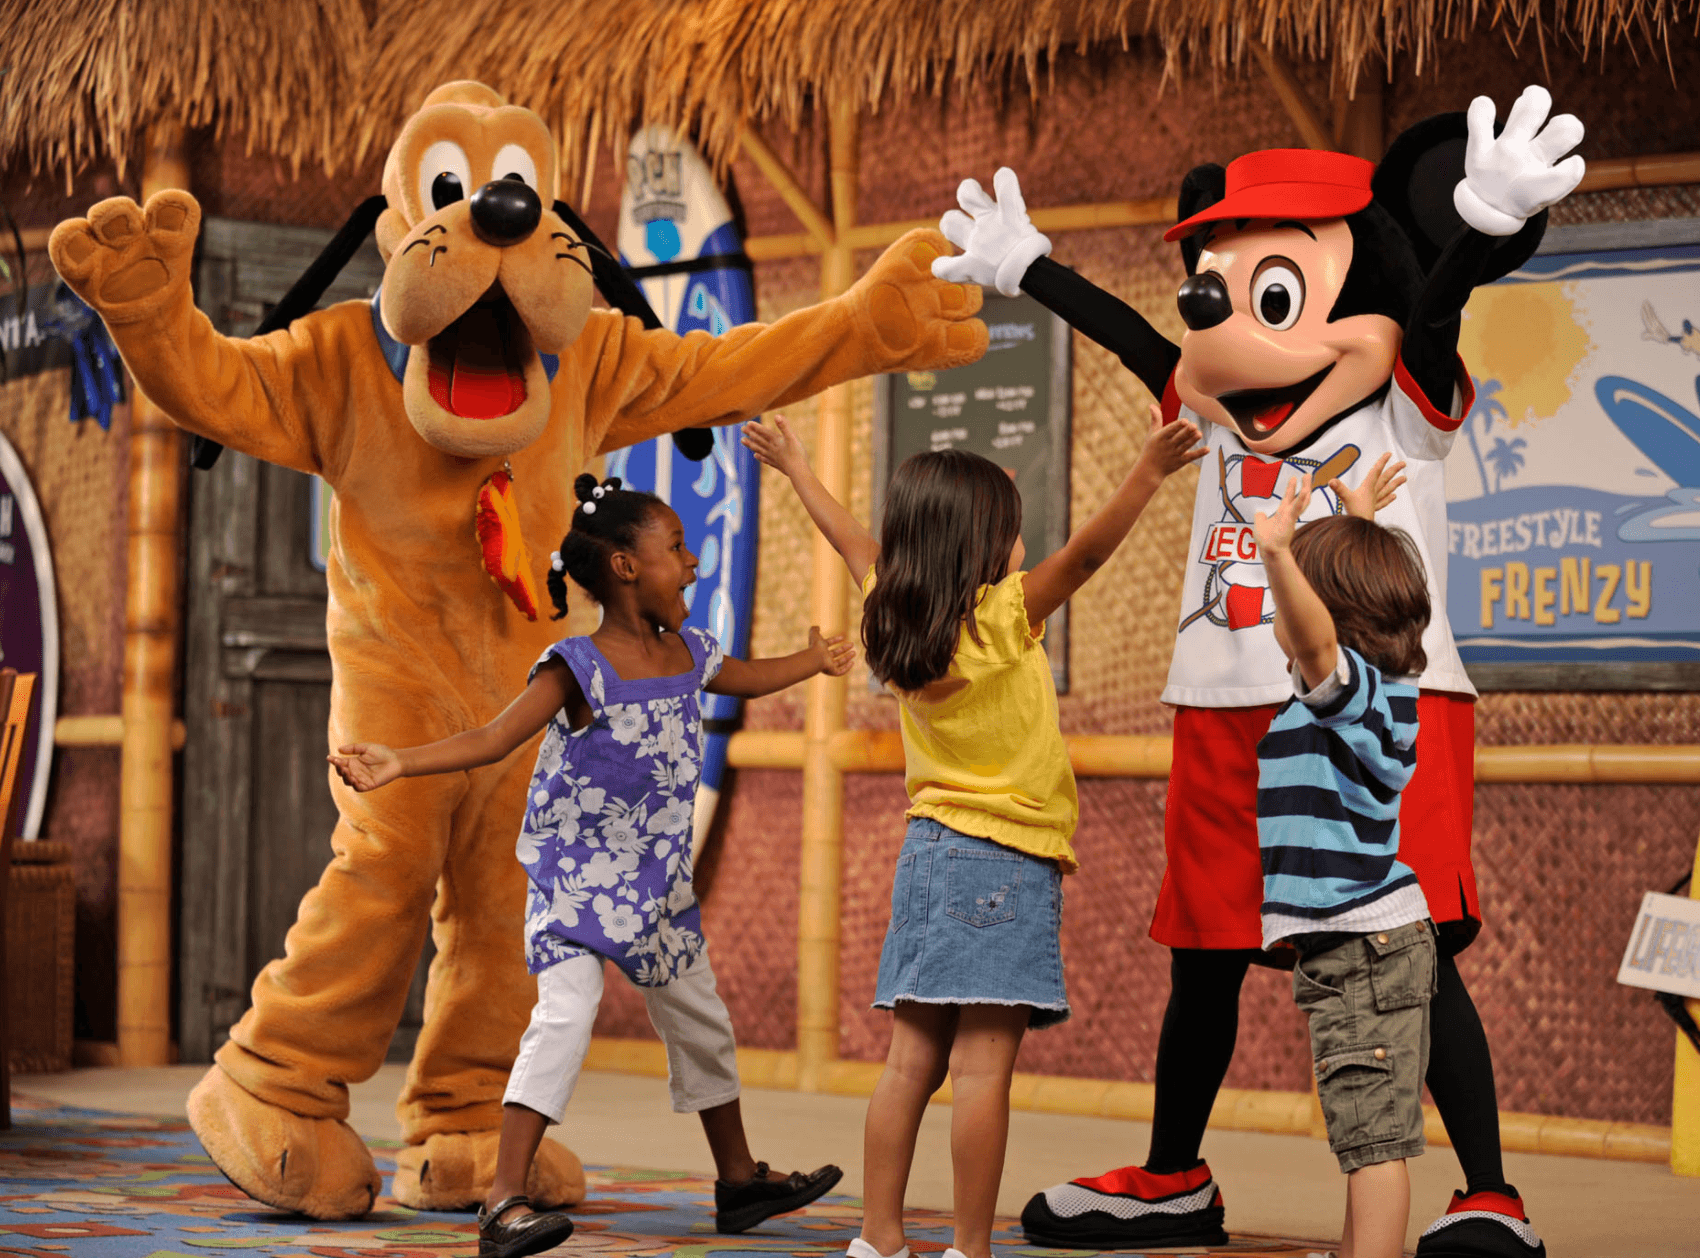 Surf's Up! Breakfast with Mickey & Friends at Disney's PCH Grill in Disney's Paradise Pier Hotel ~ Which Disneyland character meal is best for your family?